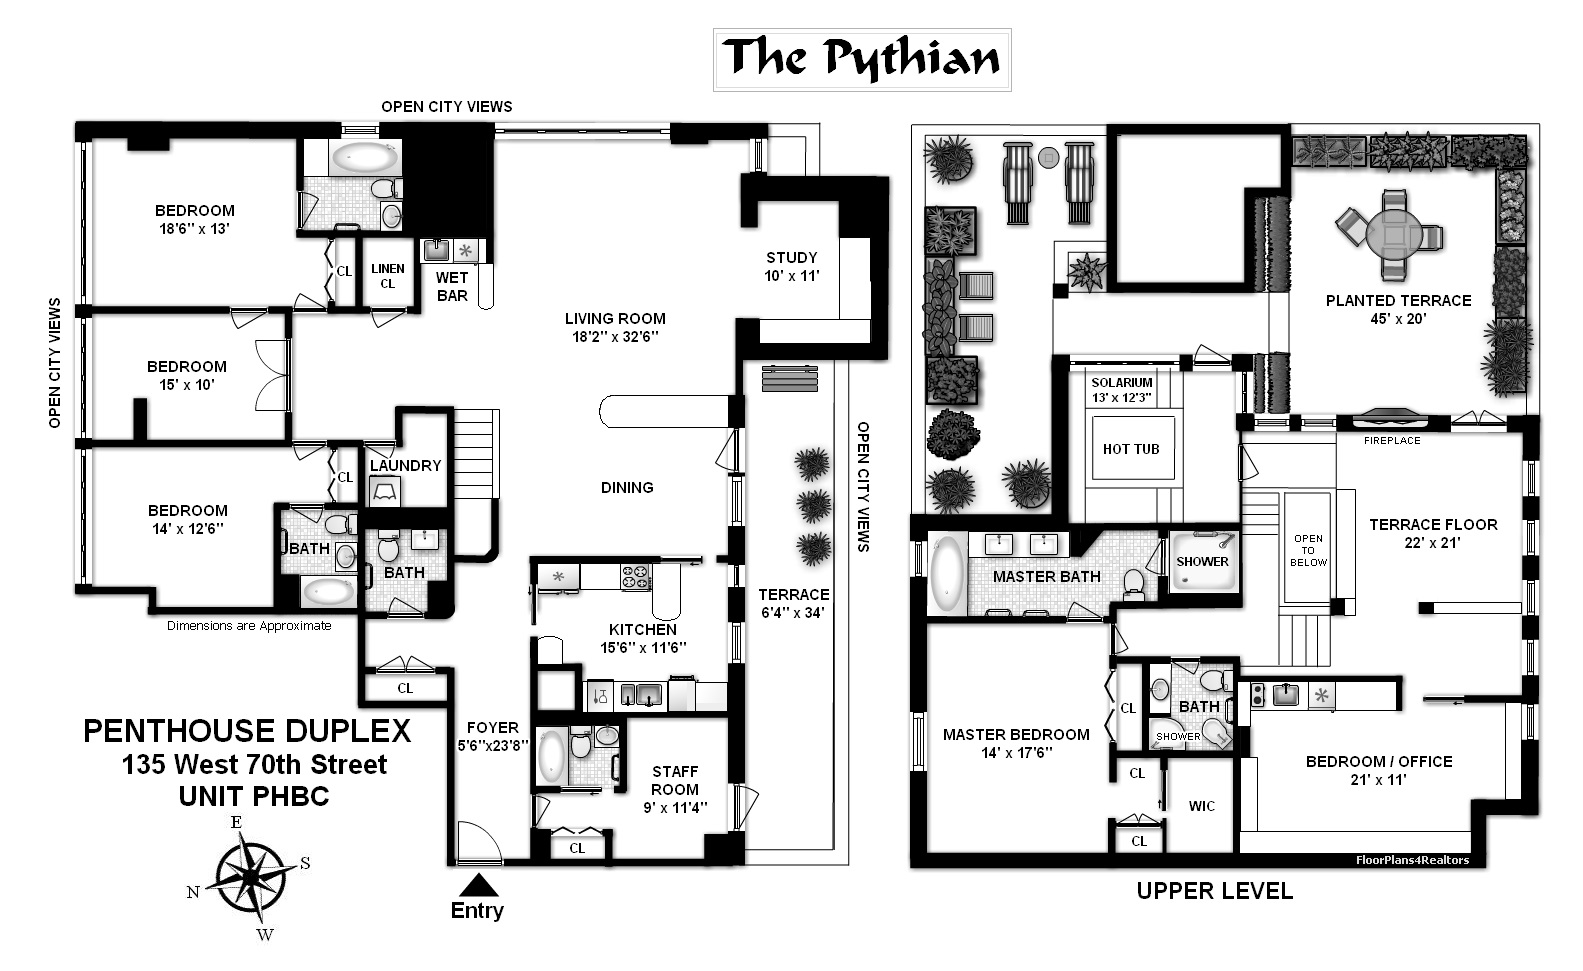 StreetEasy: 135 West 70th St. #PHBC - Condo Apartment Sale at The Pythian in Lincoln Square, Manhattan